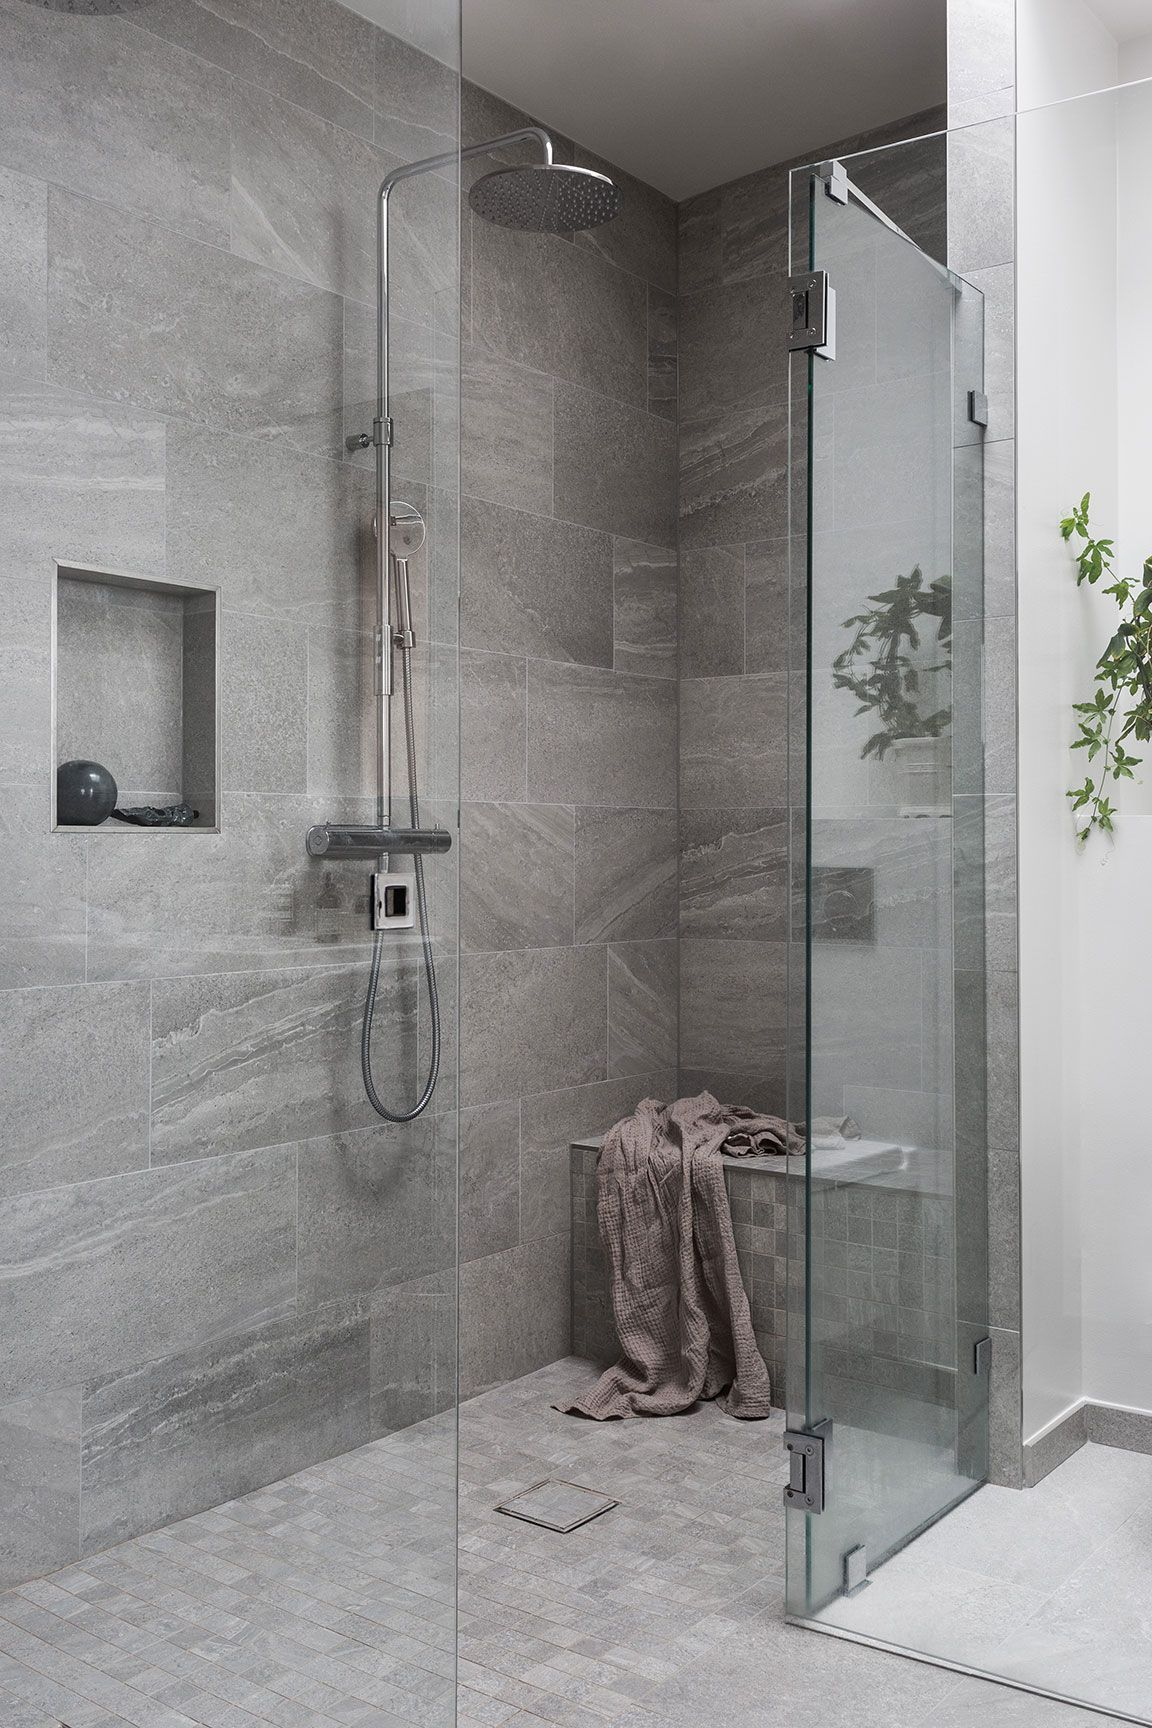 59 Simply Chic Bathroom Tile Ideas For Floor Shower And Wall